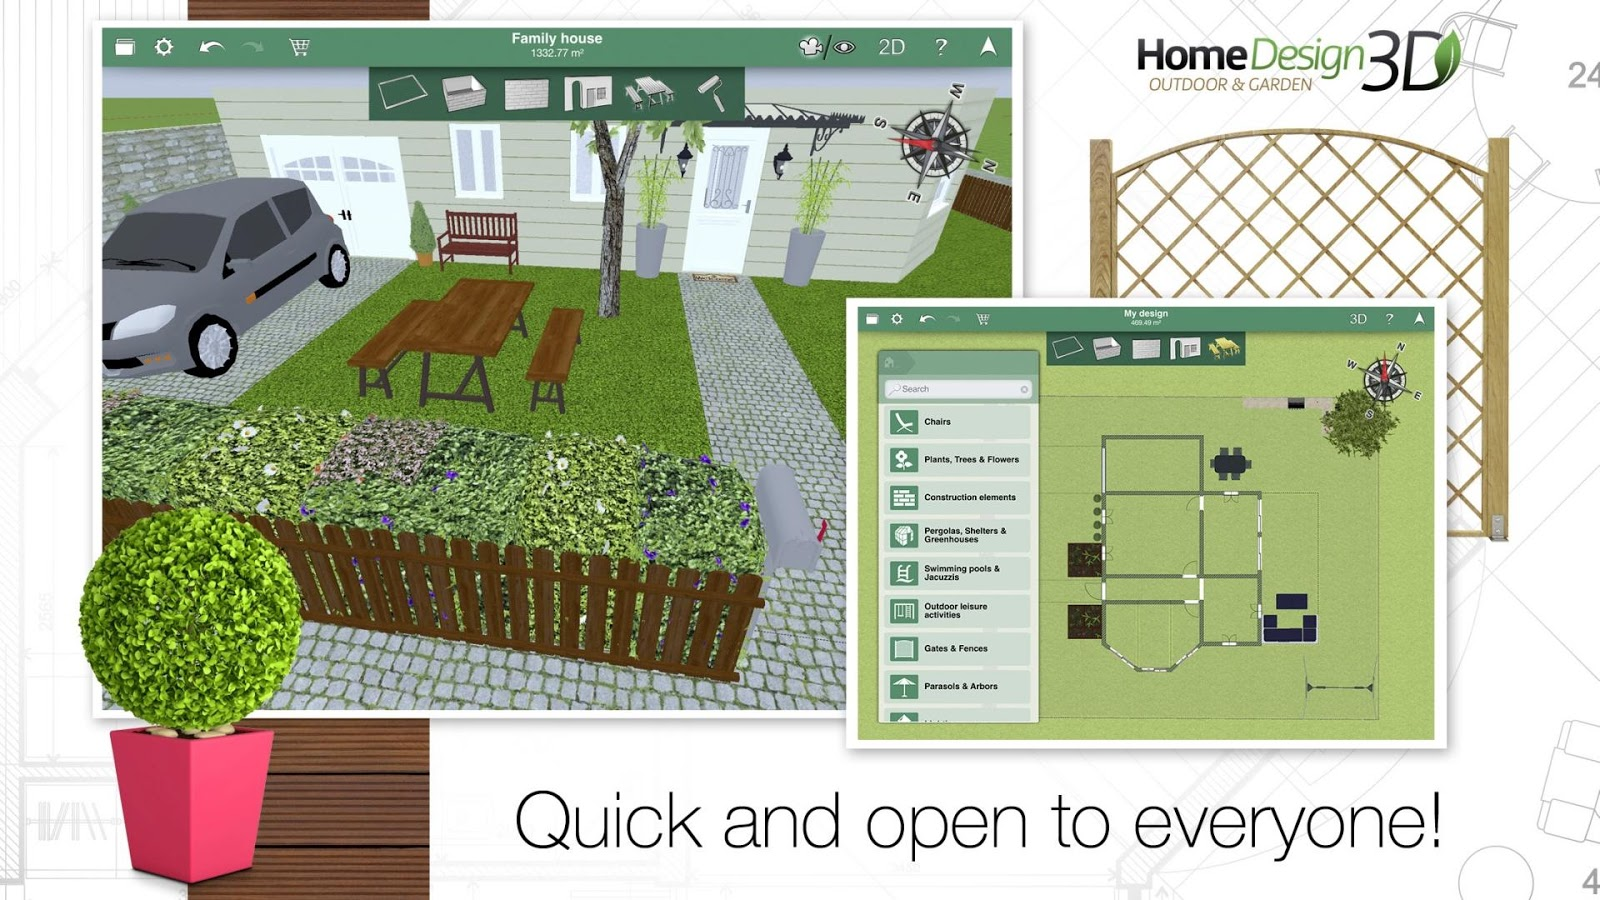 Home Design 3D Outdoor/Garden Slides Into The Play Store